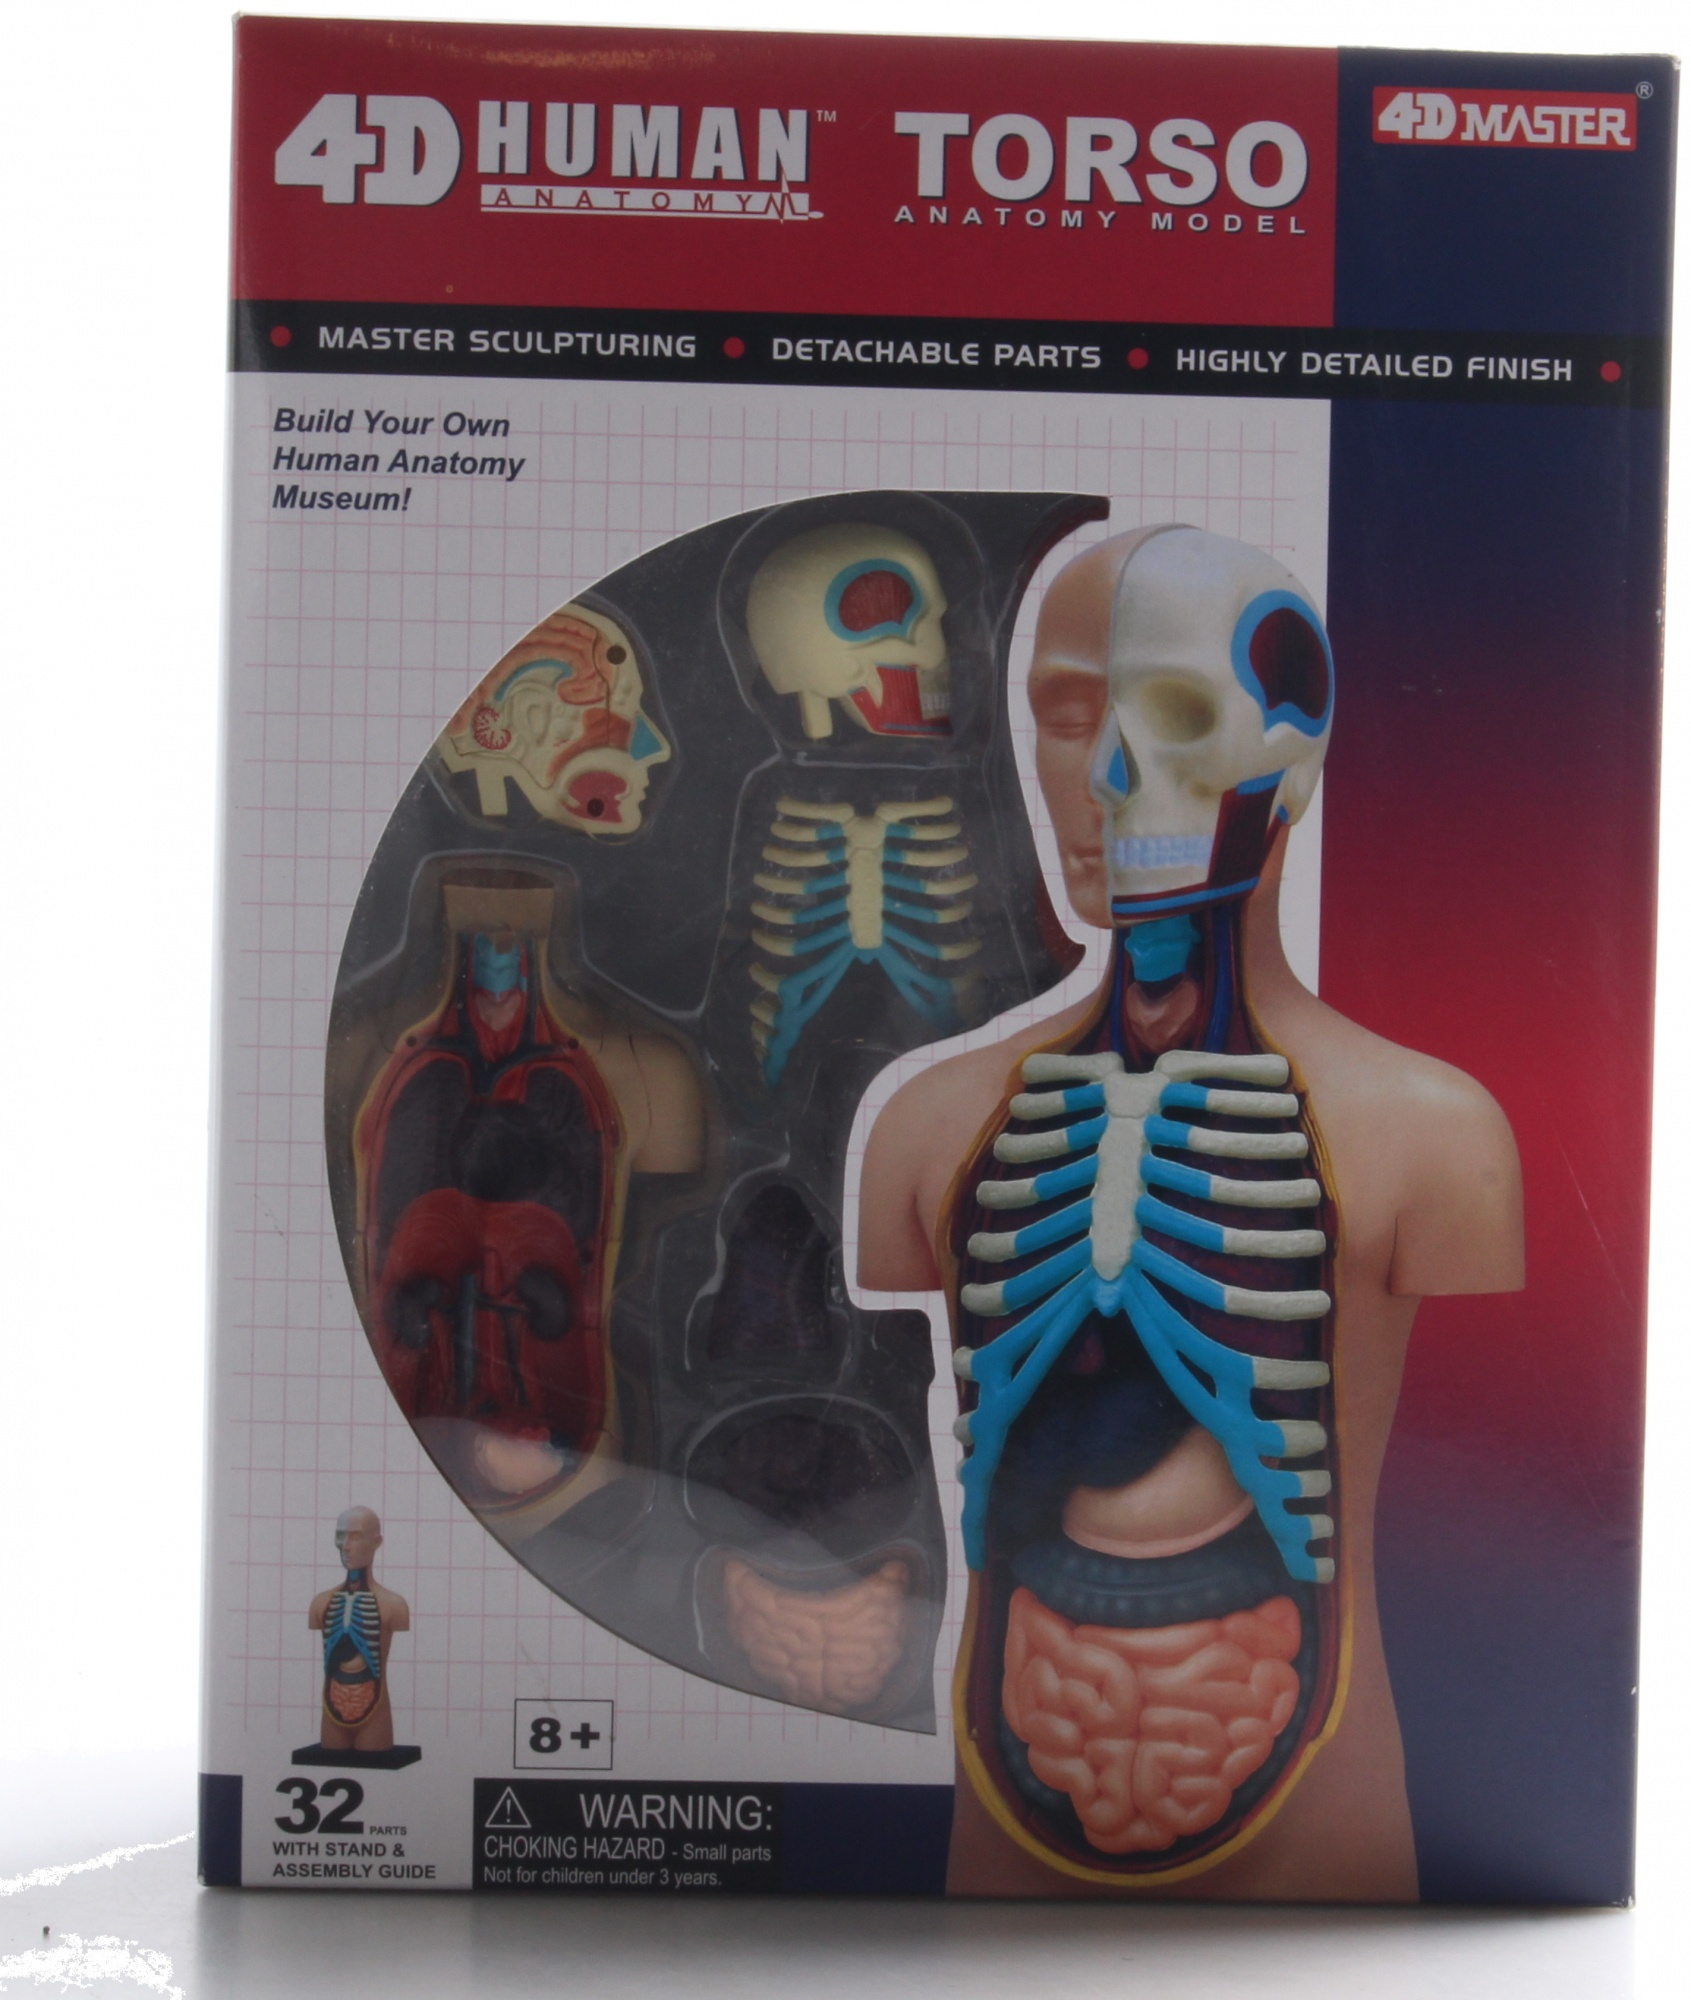 Human Torso Model Toys Buy Online From Fishpond